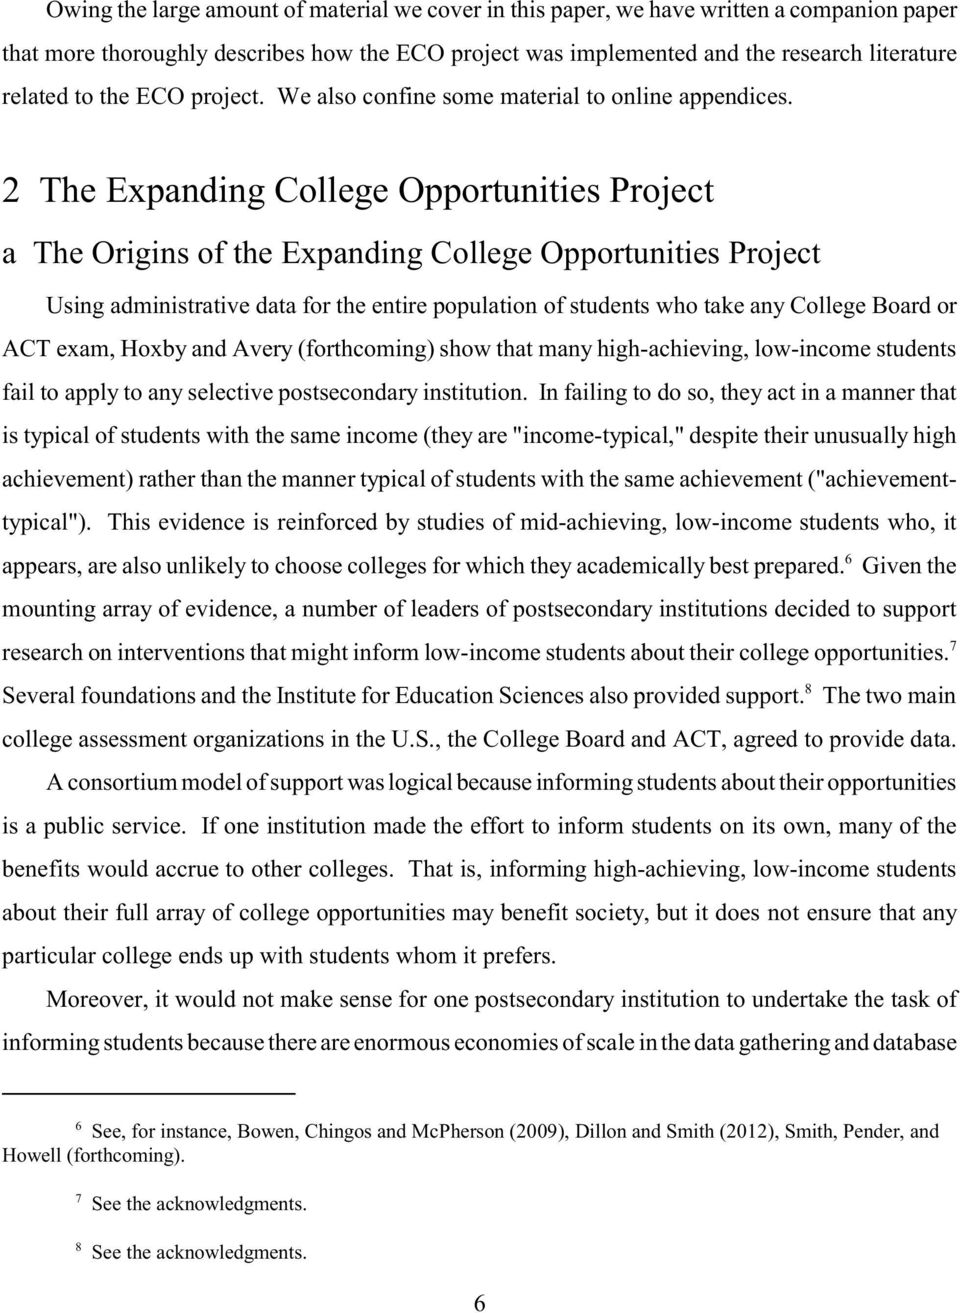 2 The Expanding College Opportunities Project a The Origins of the Expanding College Opportunities Project Using administrative data for the entire population of students who take any College Board